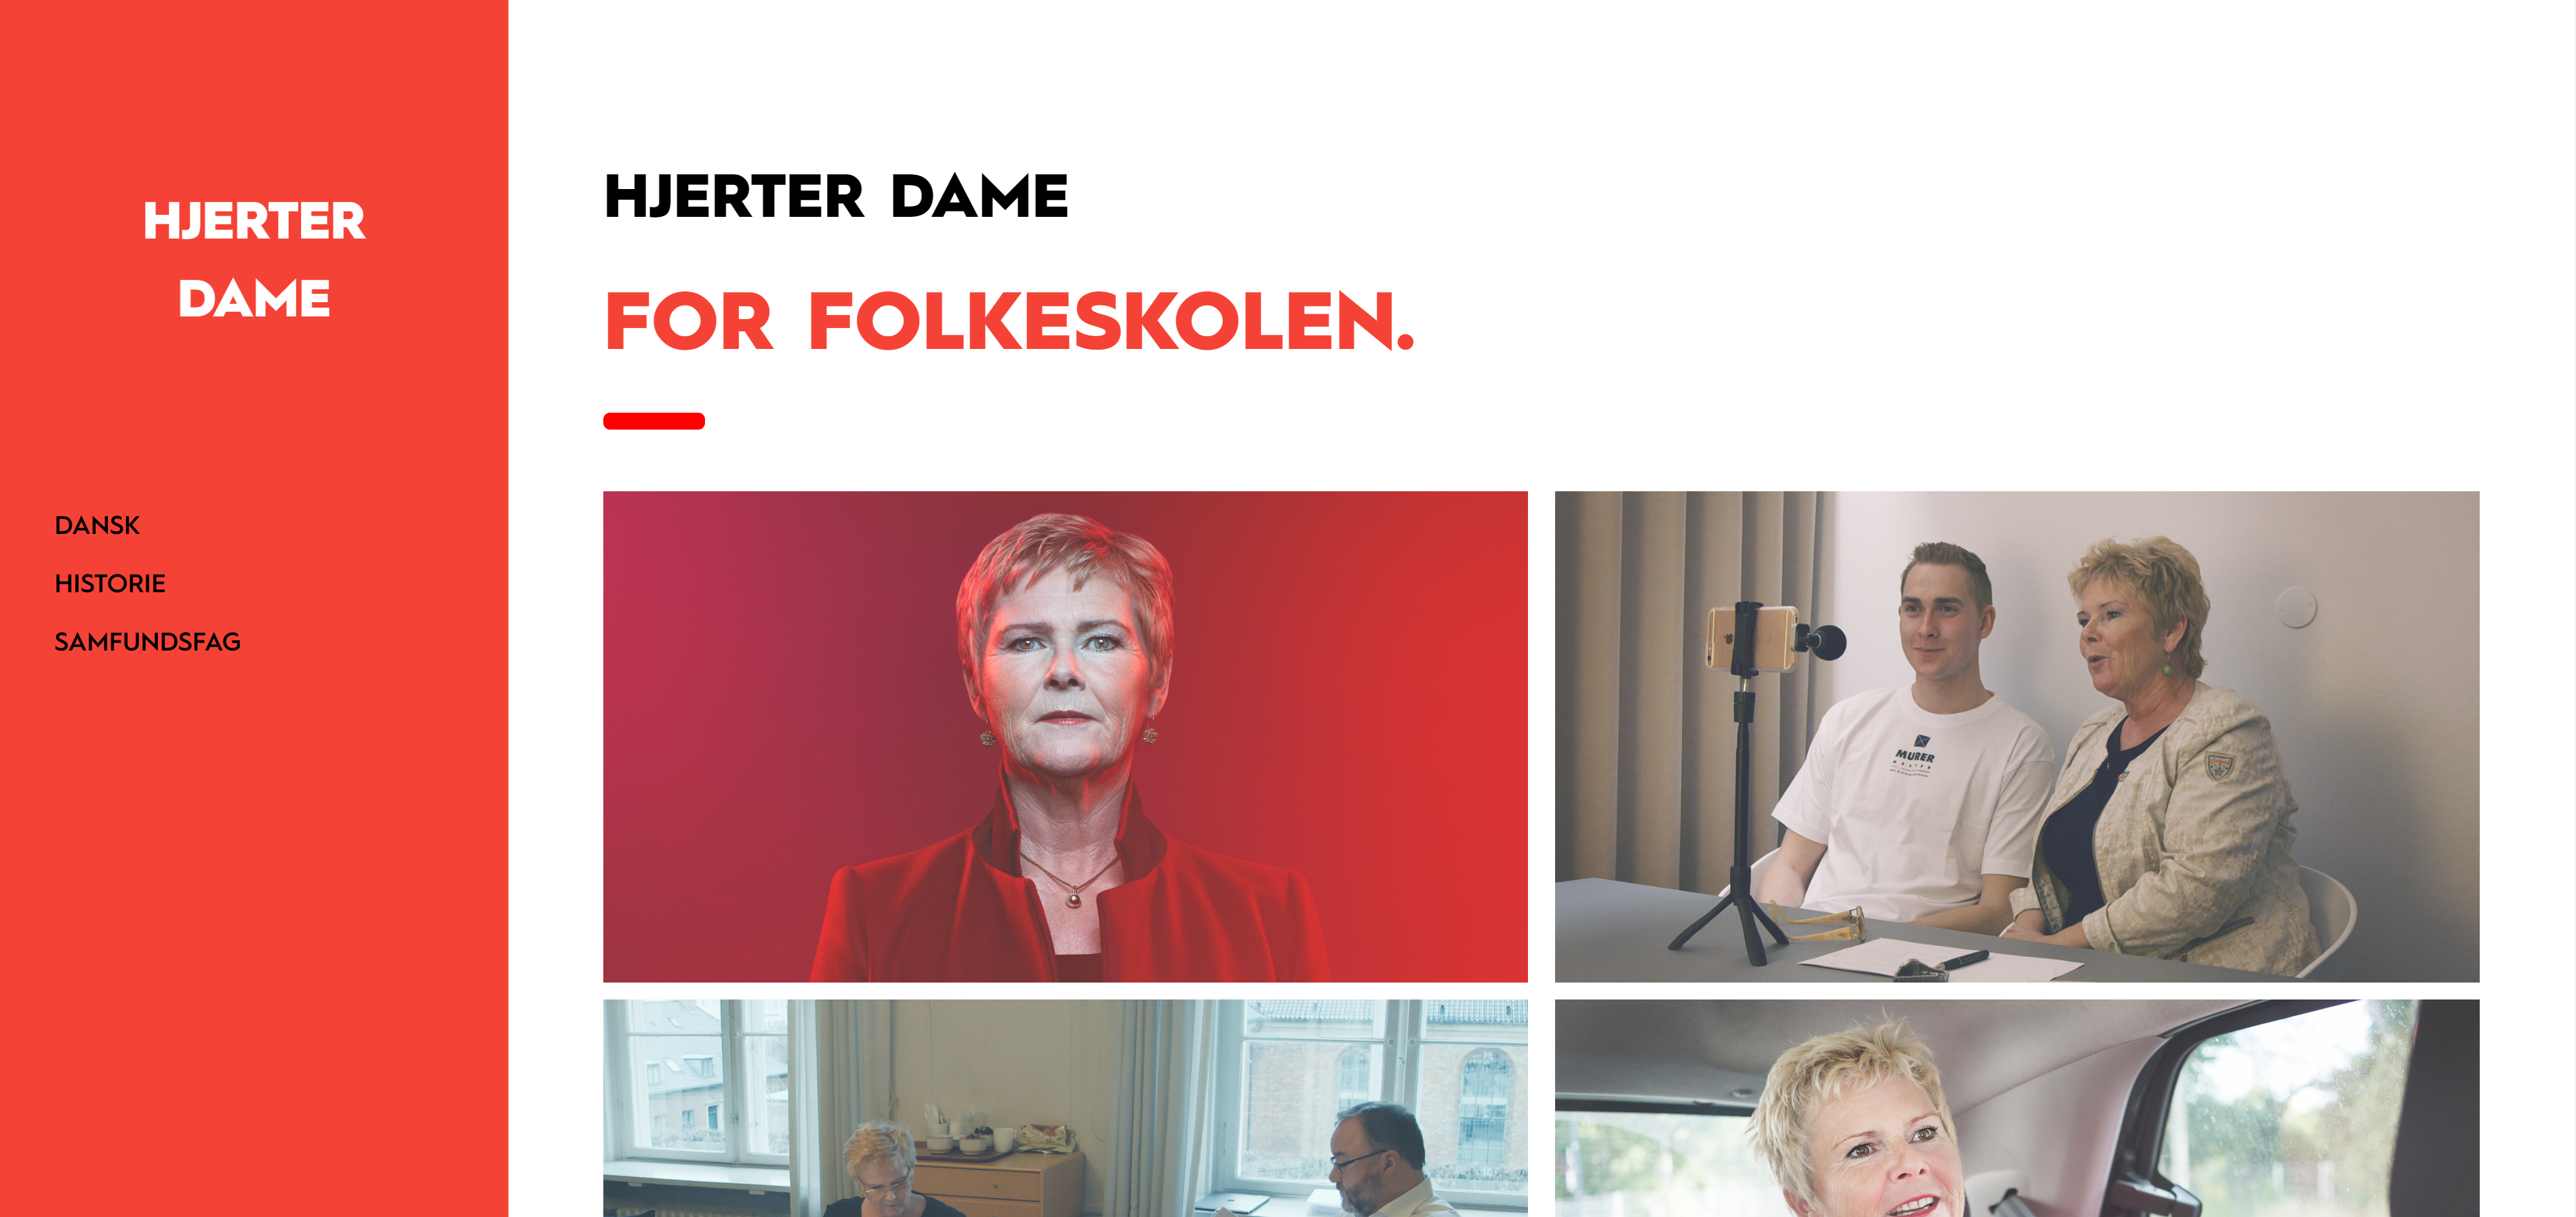 Webdesign for the documentary, Hjerter Dame